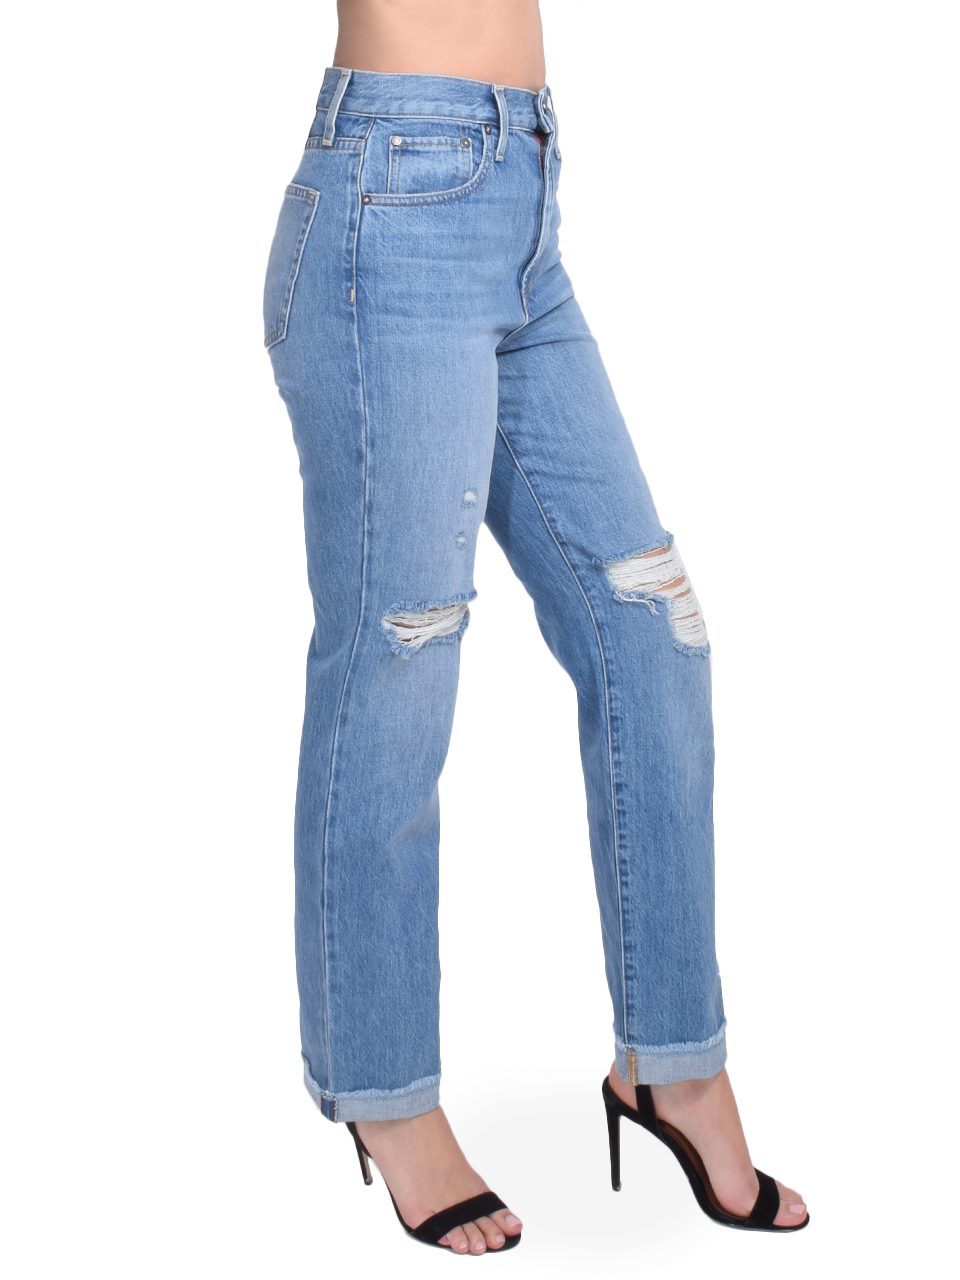 ALICE + OLIVIA Amazing High Rise Boyfriend Jean in Not Yours Side View